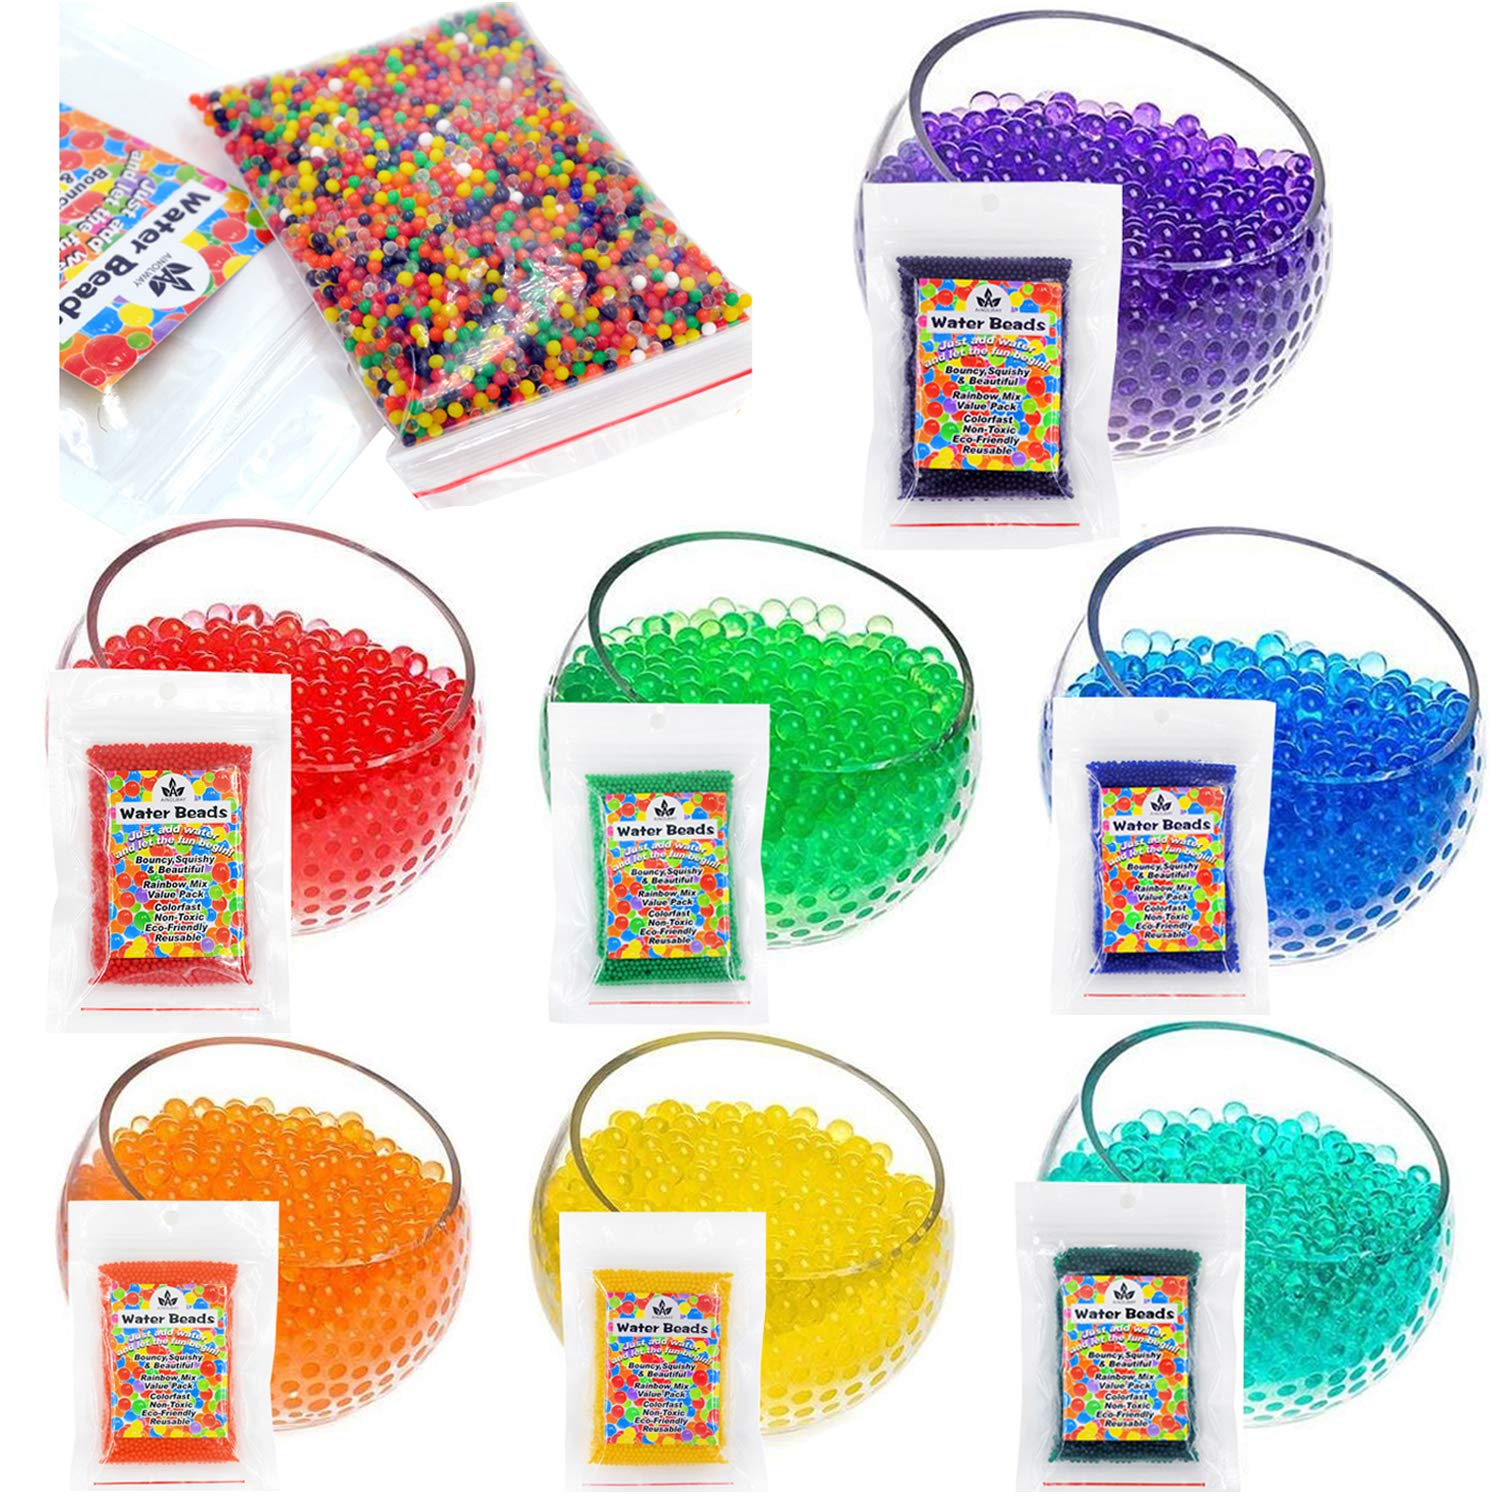 AINOLWAY Water Beads, 30 OZ ( 80,000 Beads) Crystal Water Gel Bead for Kids Sensory Toys, Vase Filler, Home Décor, Transparent Jelly Pearls 9 Pack Water Bead by AINOLWAY